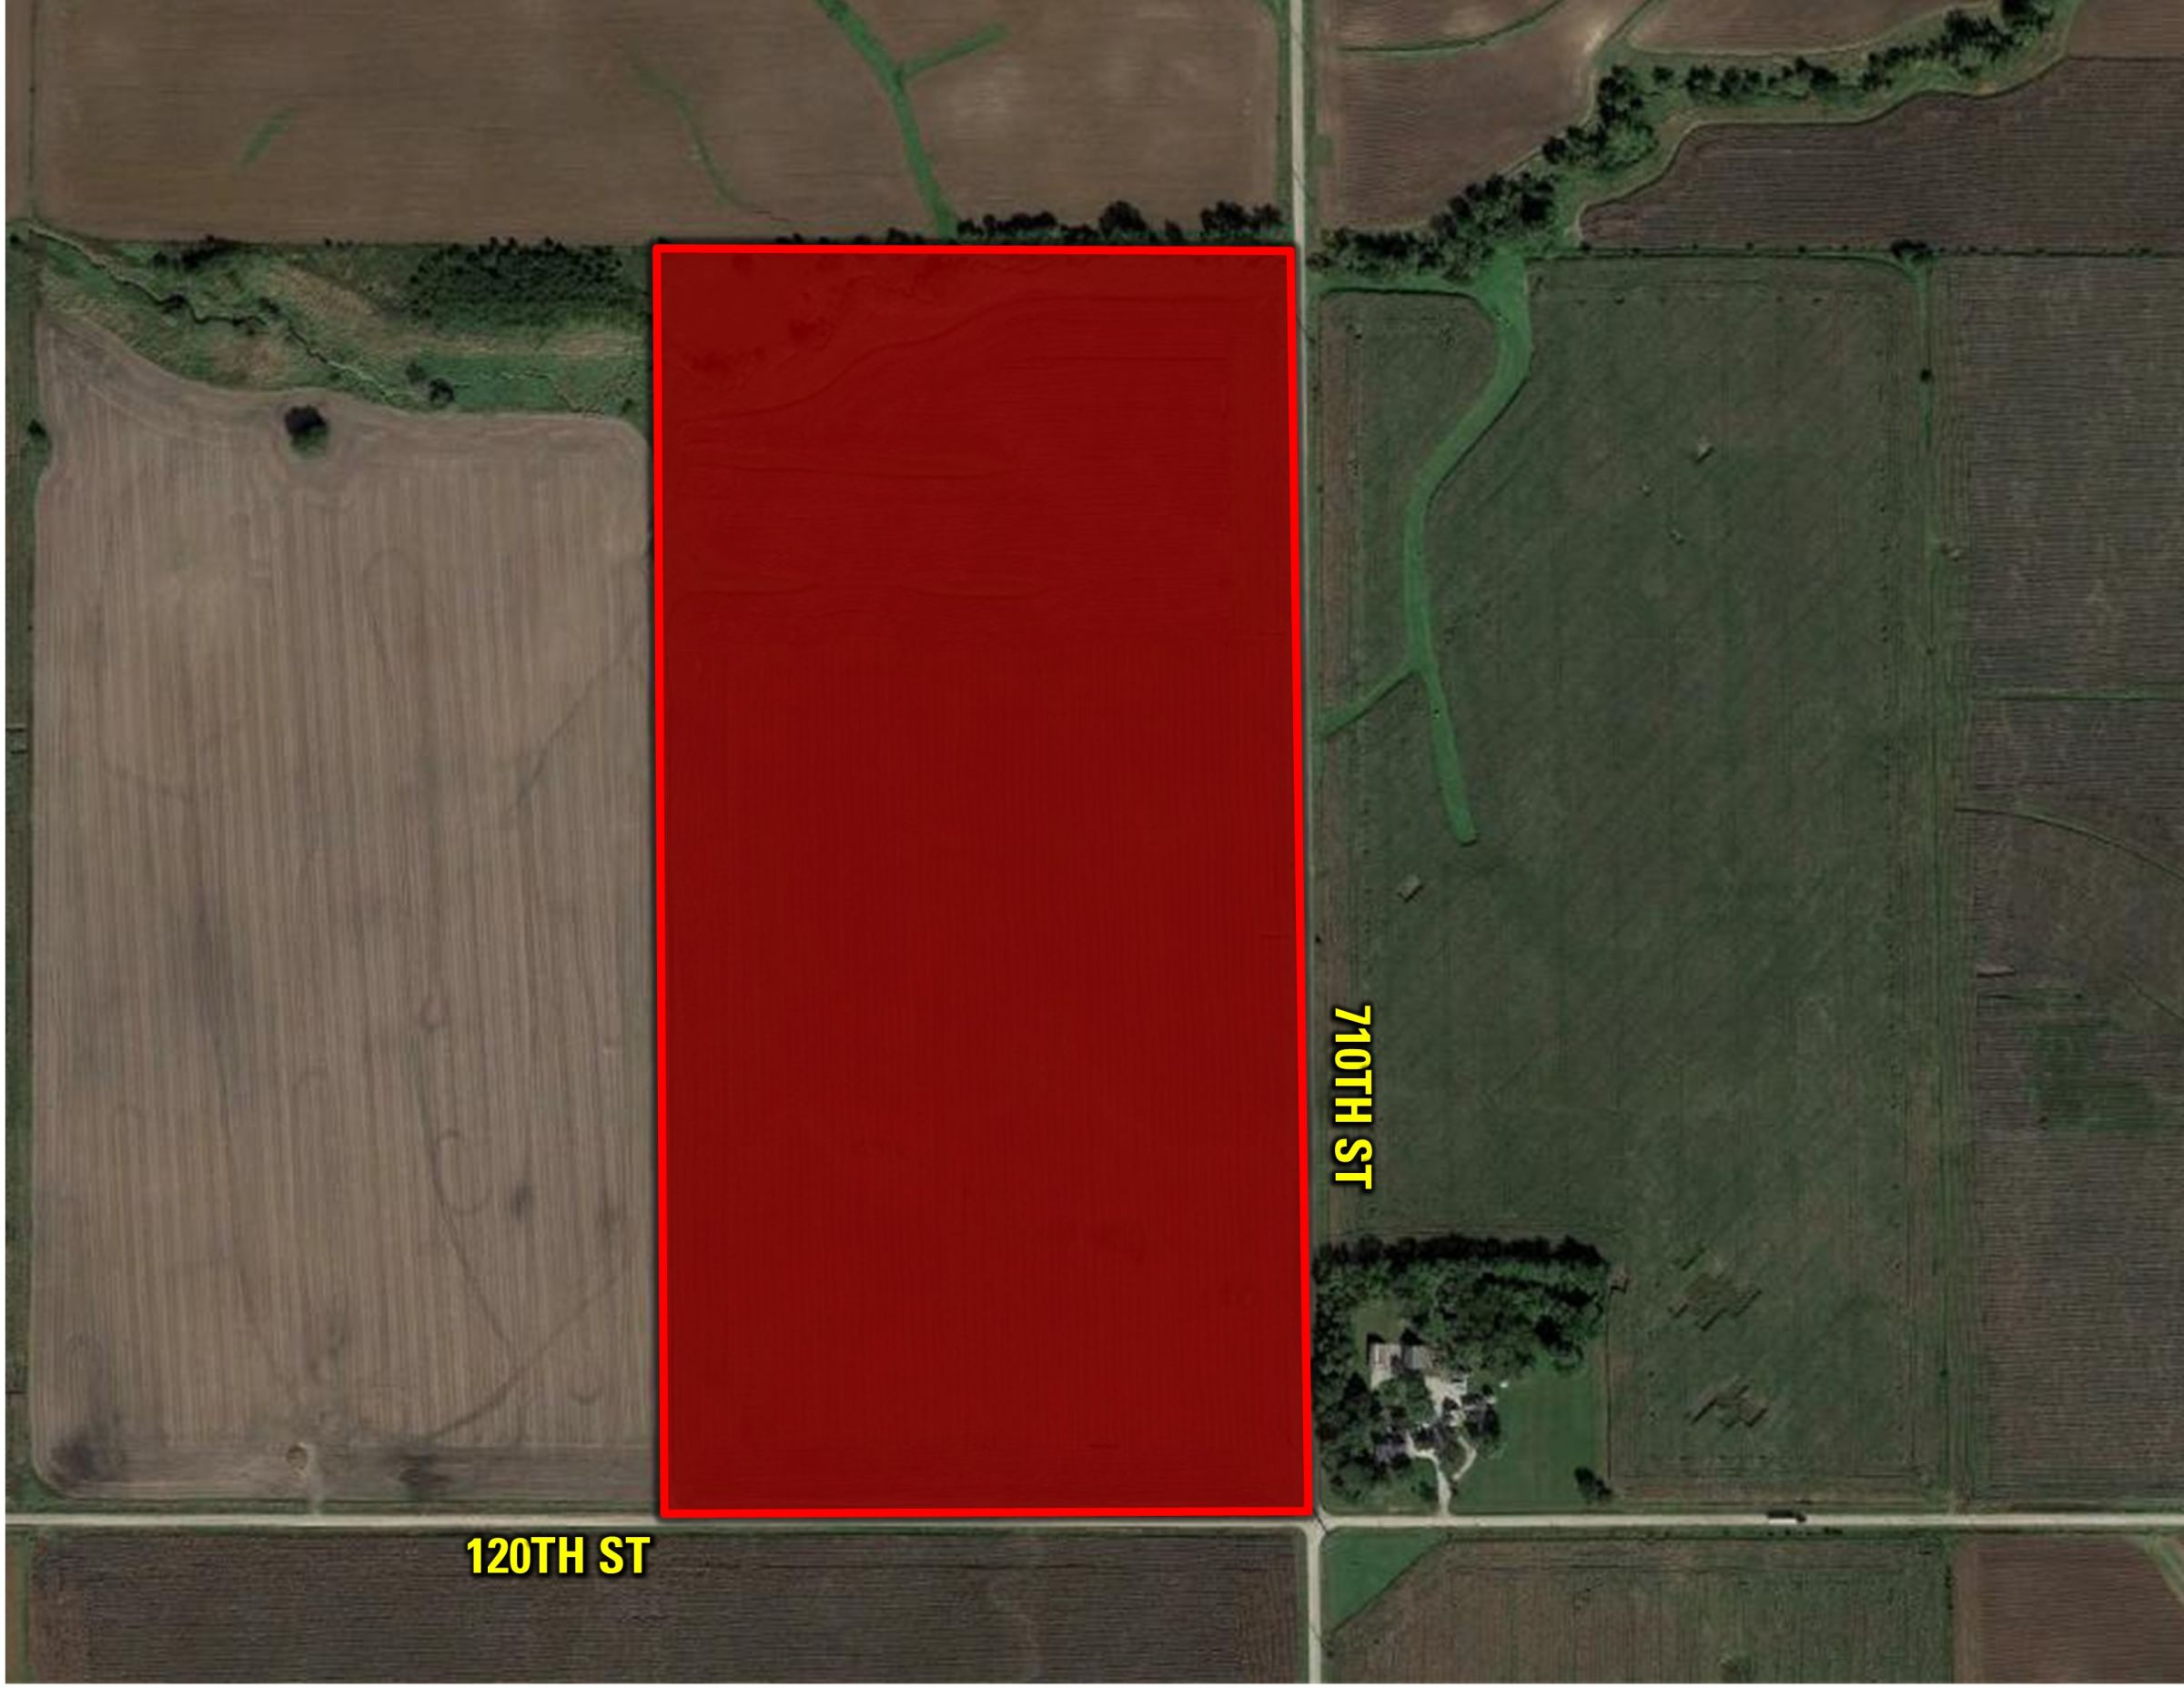 land-syndications-story-county-iowa-80-acres-listing-number-15620-3-2021-07-08-174004.jpg